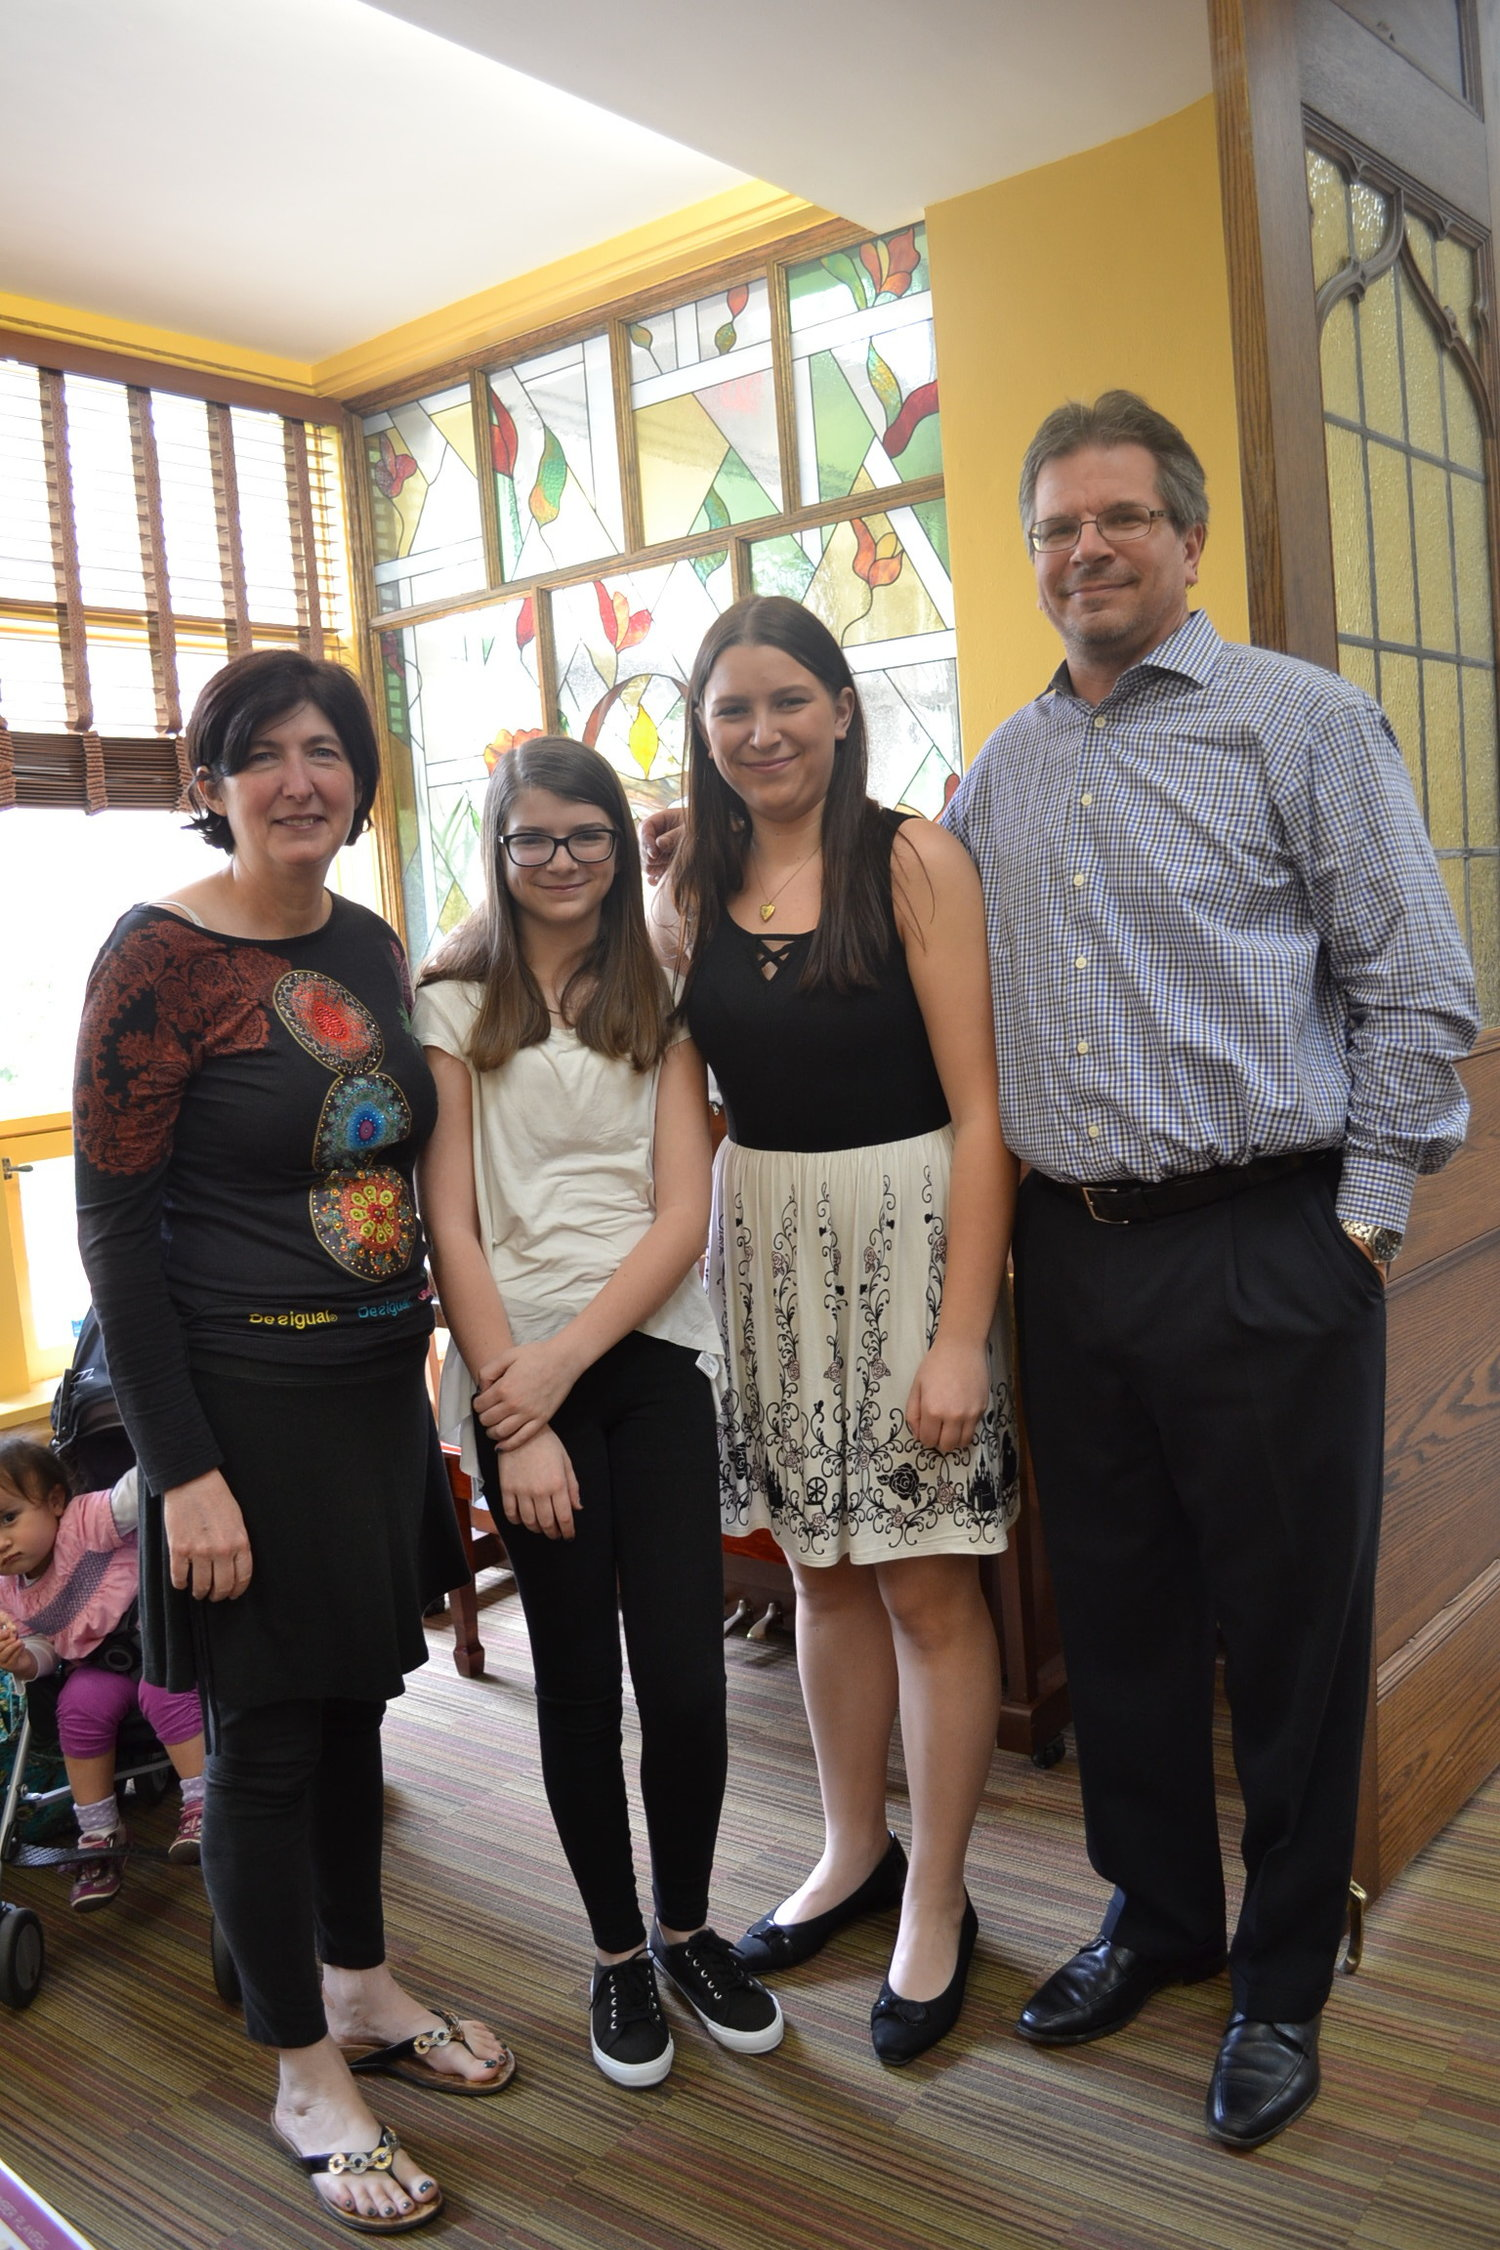 The Spear family celebrates Allison's graduation from CYM at the Solo Recital